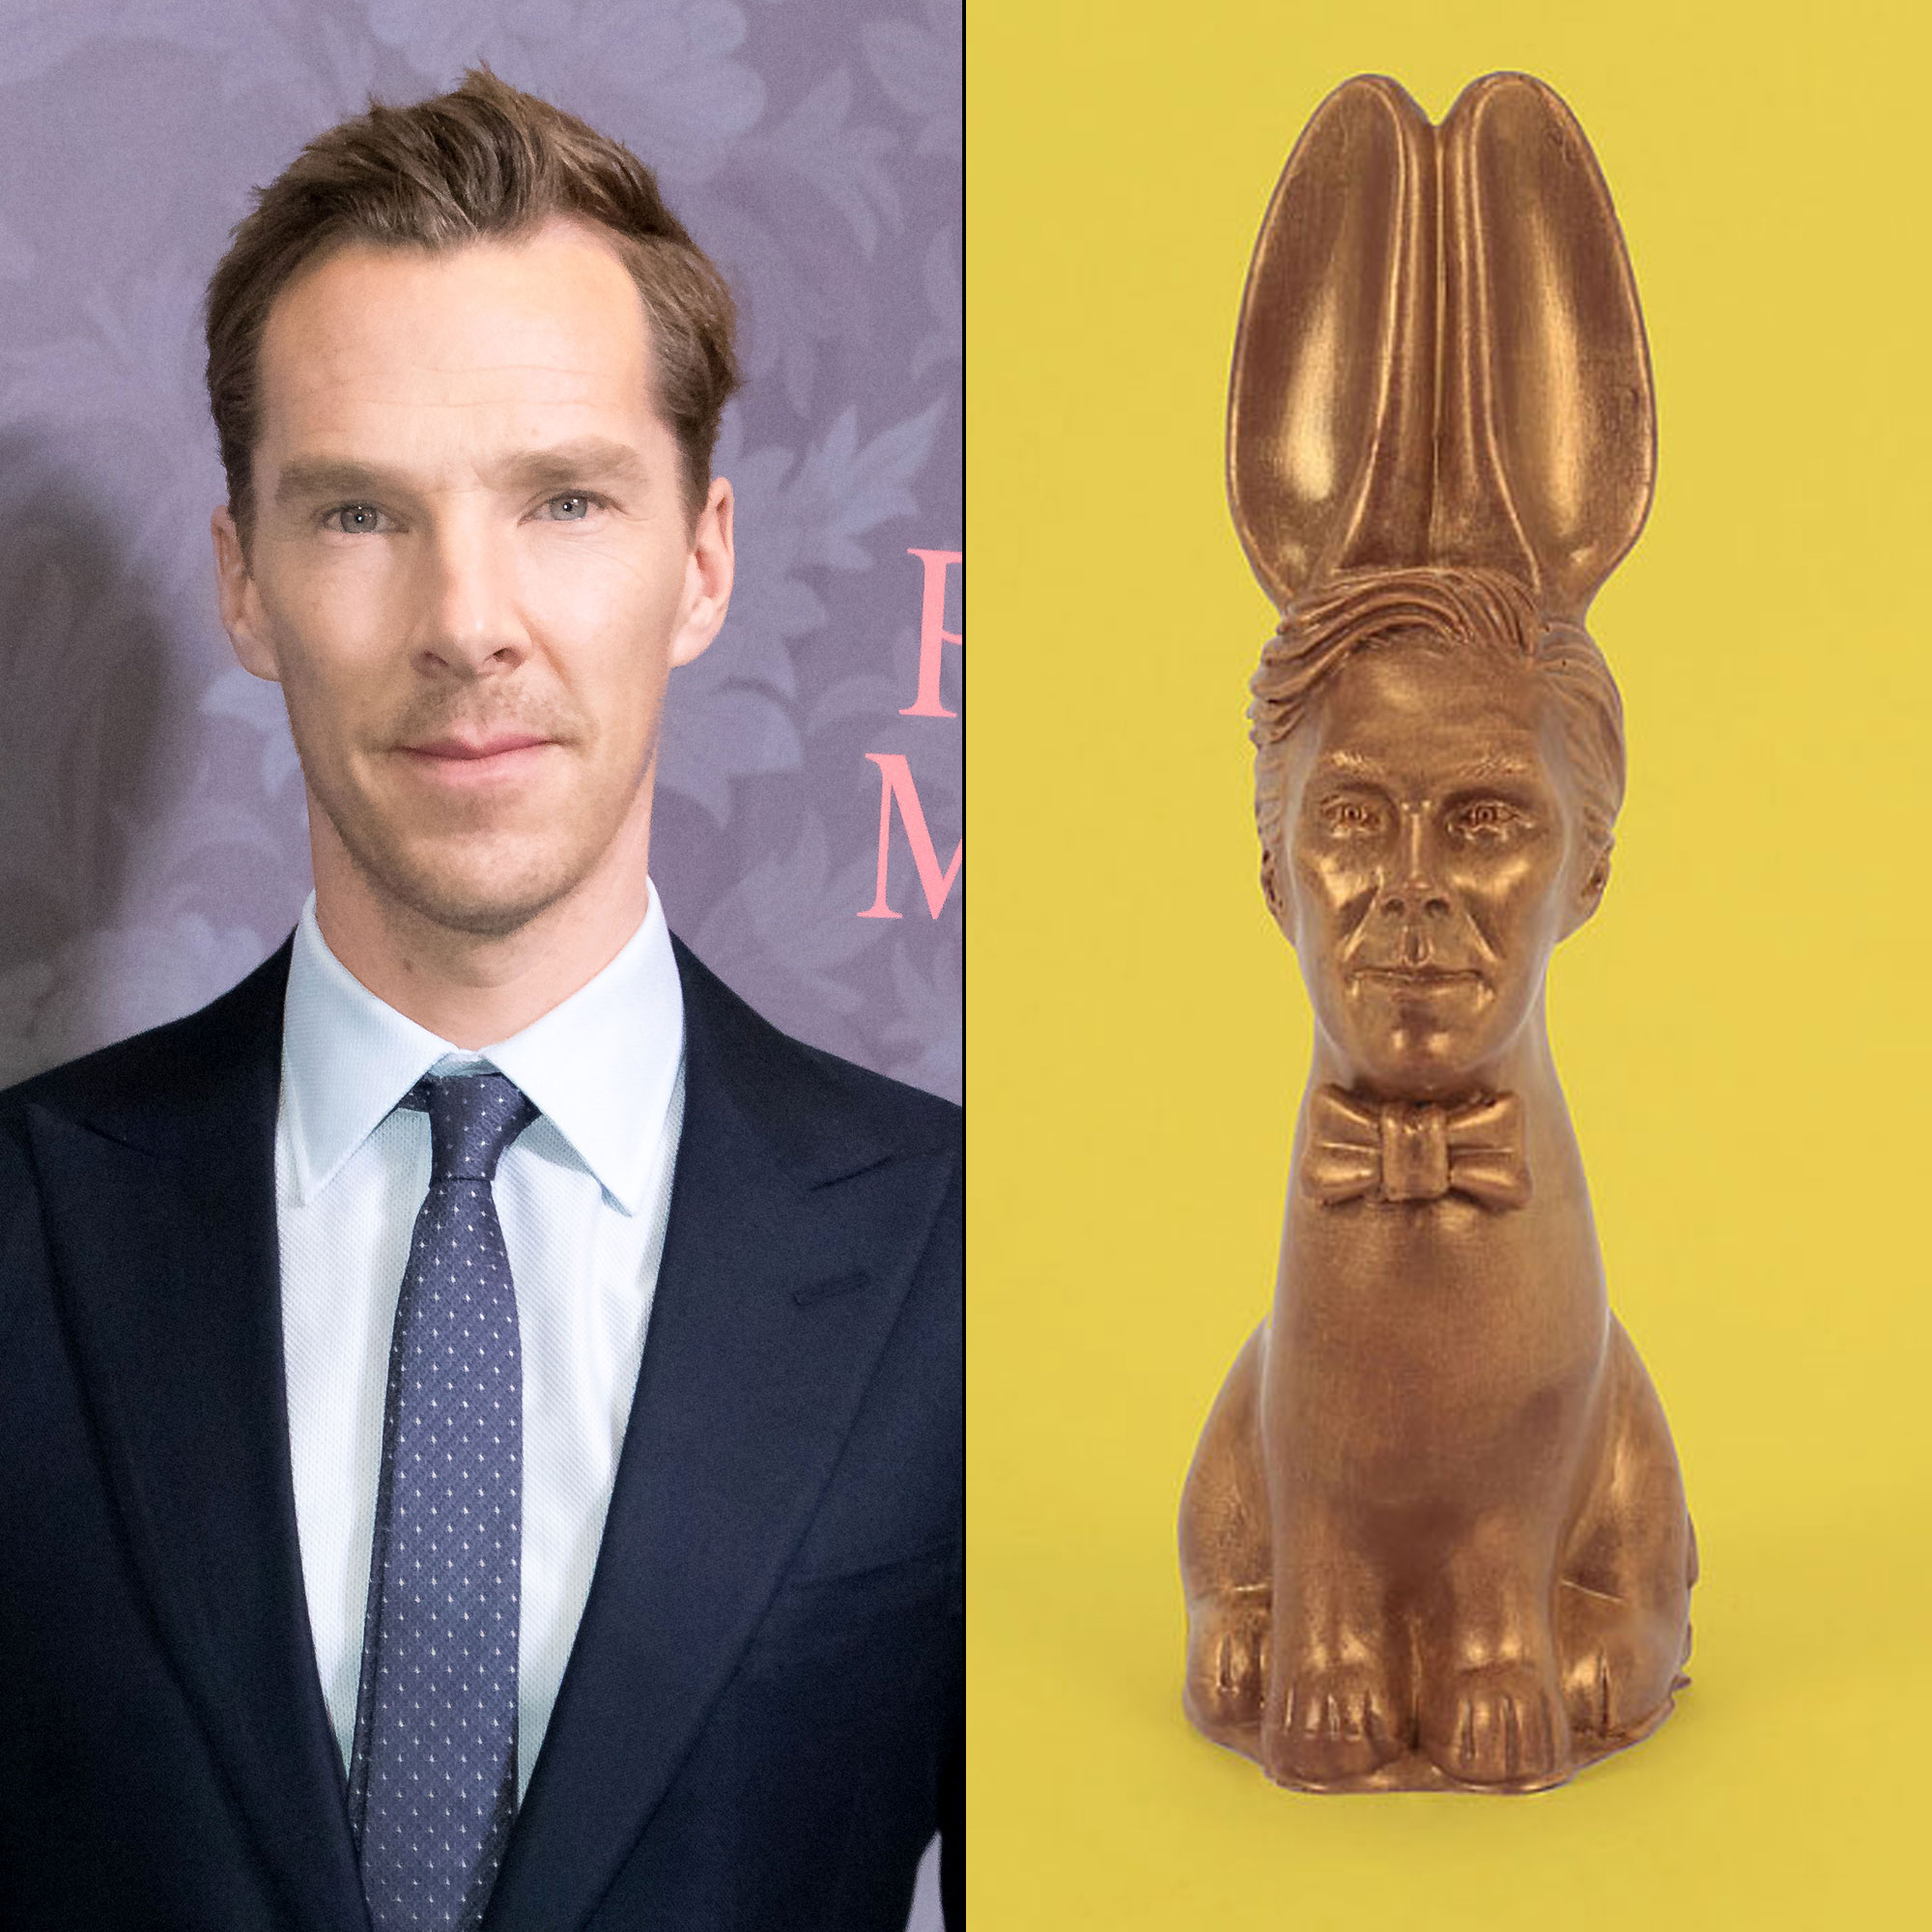 Chocolate Bunny That Looks Like Benedict Cumberbatch Is the Easter Treat You Didn't Know You Needed - Benedict Cumberbatch and a Chocolate Cumberbunny.